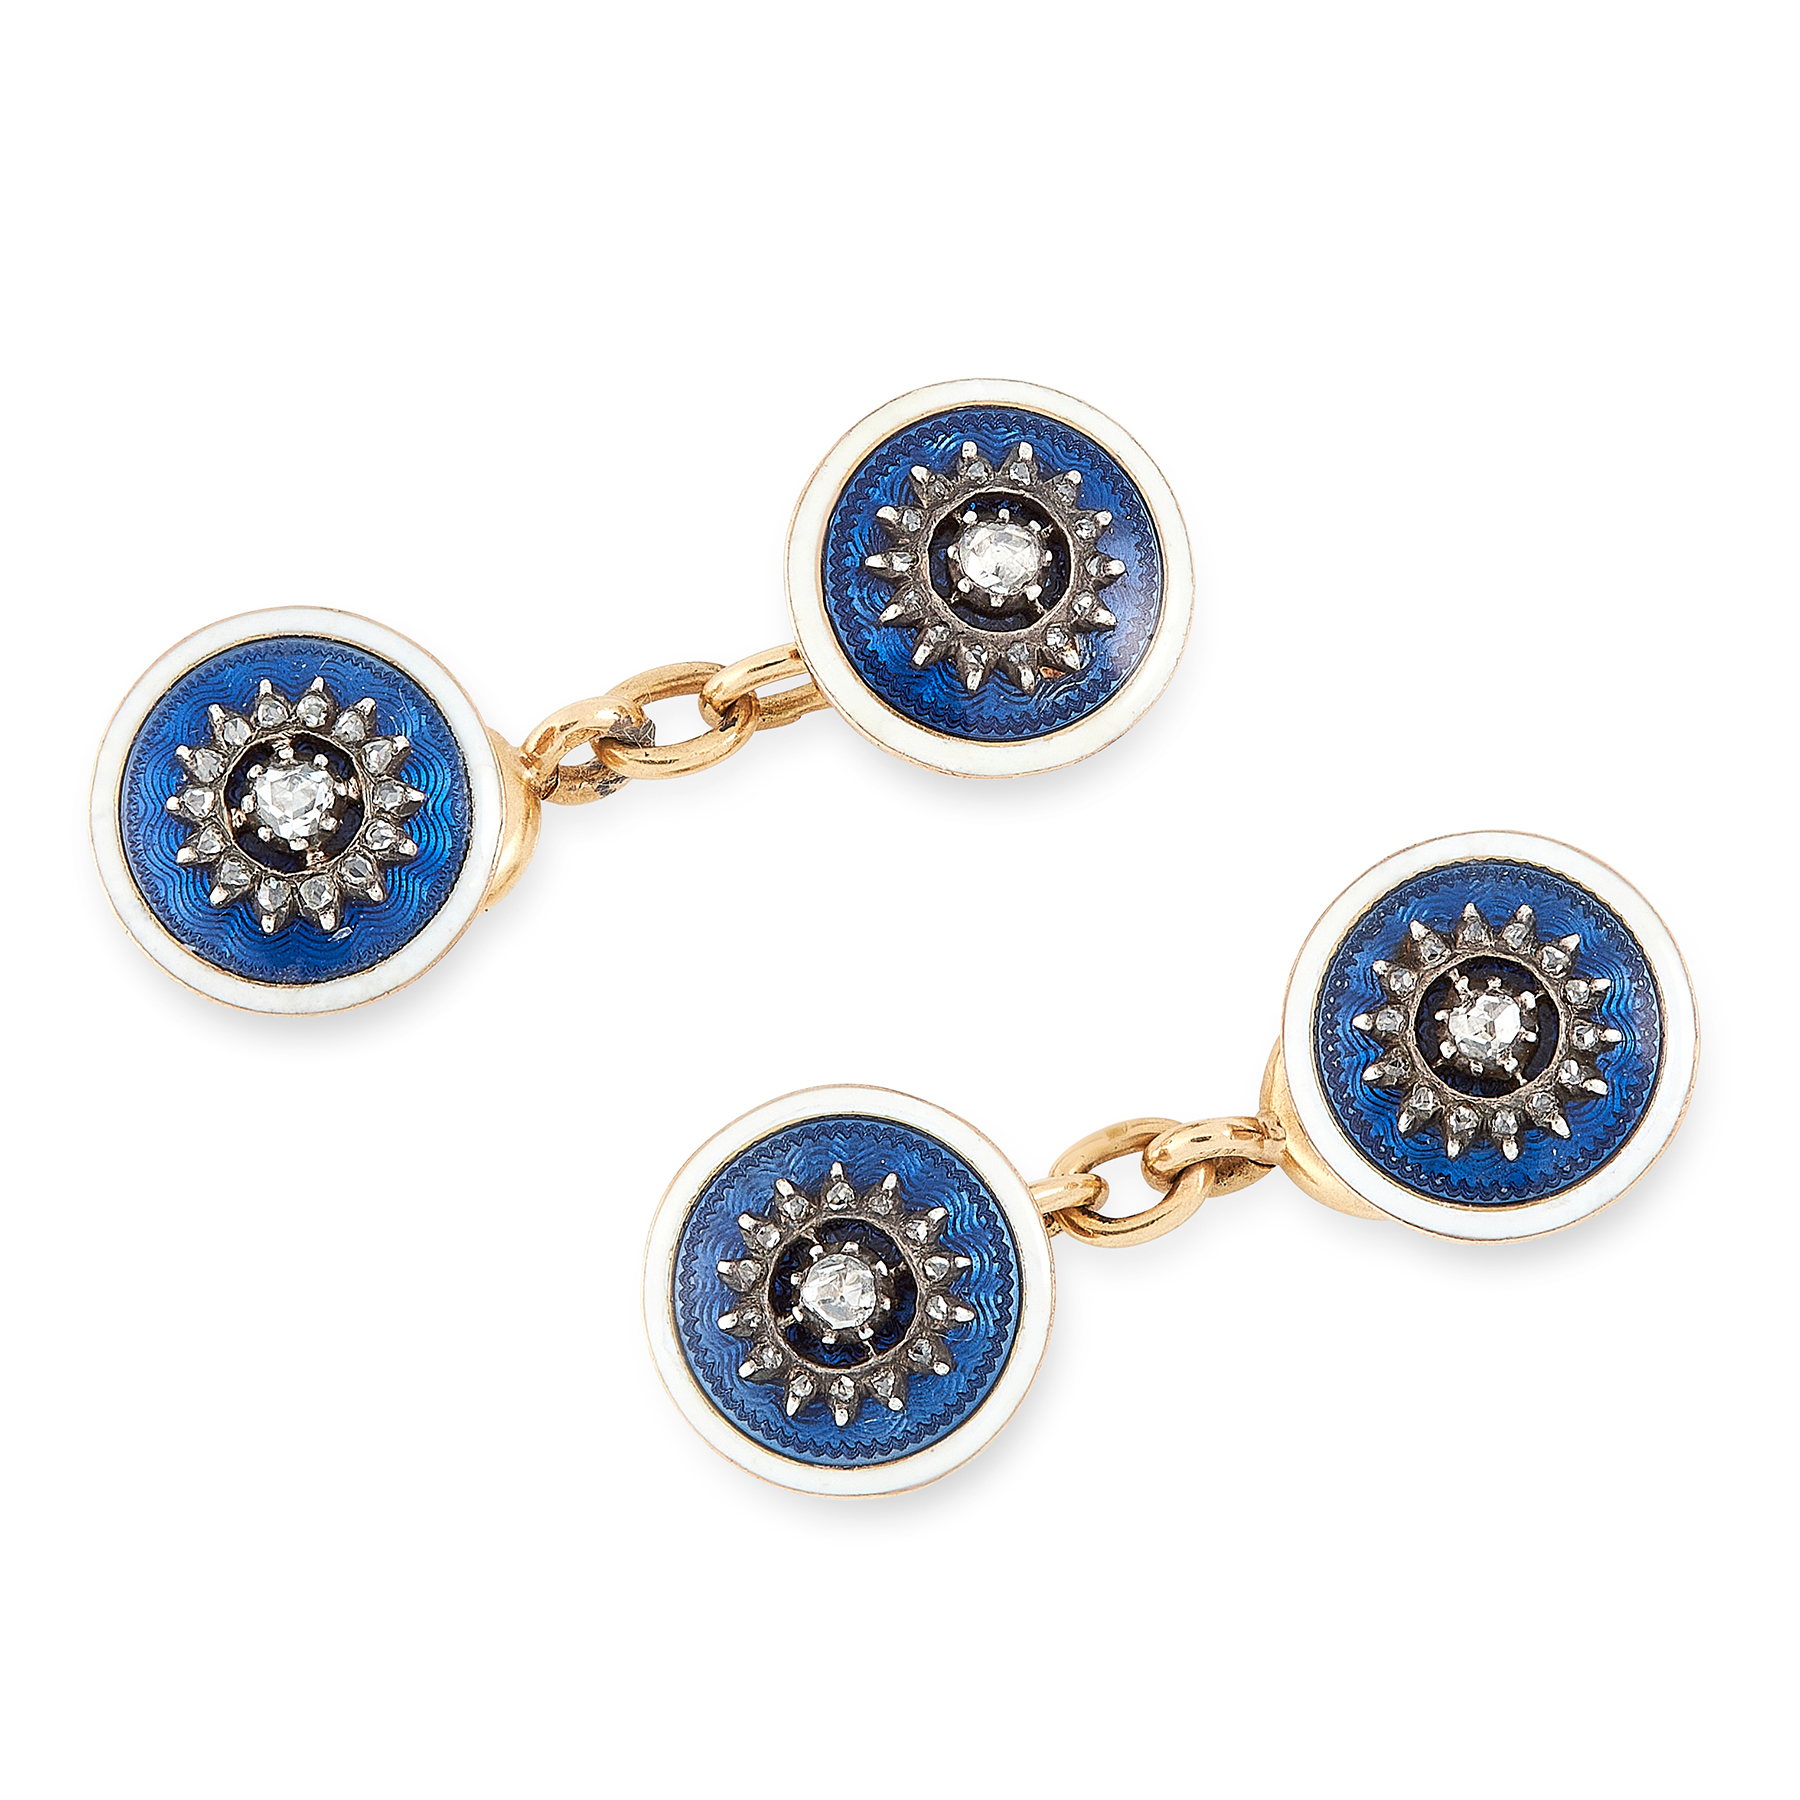 A PAIR OF ENAMEL AND DIAMOND CUFFLINKS, CARTIER in 18ct yellow gold, each formed of two circular